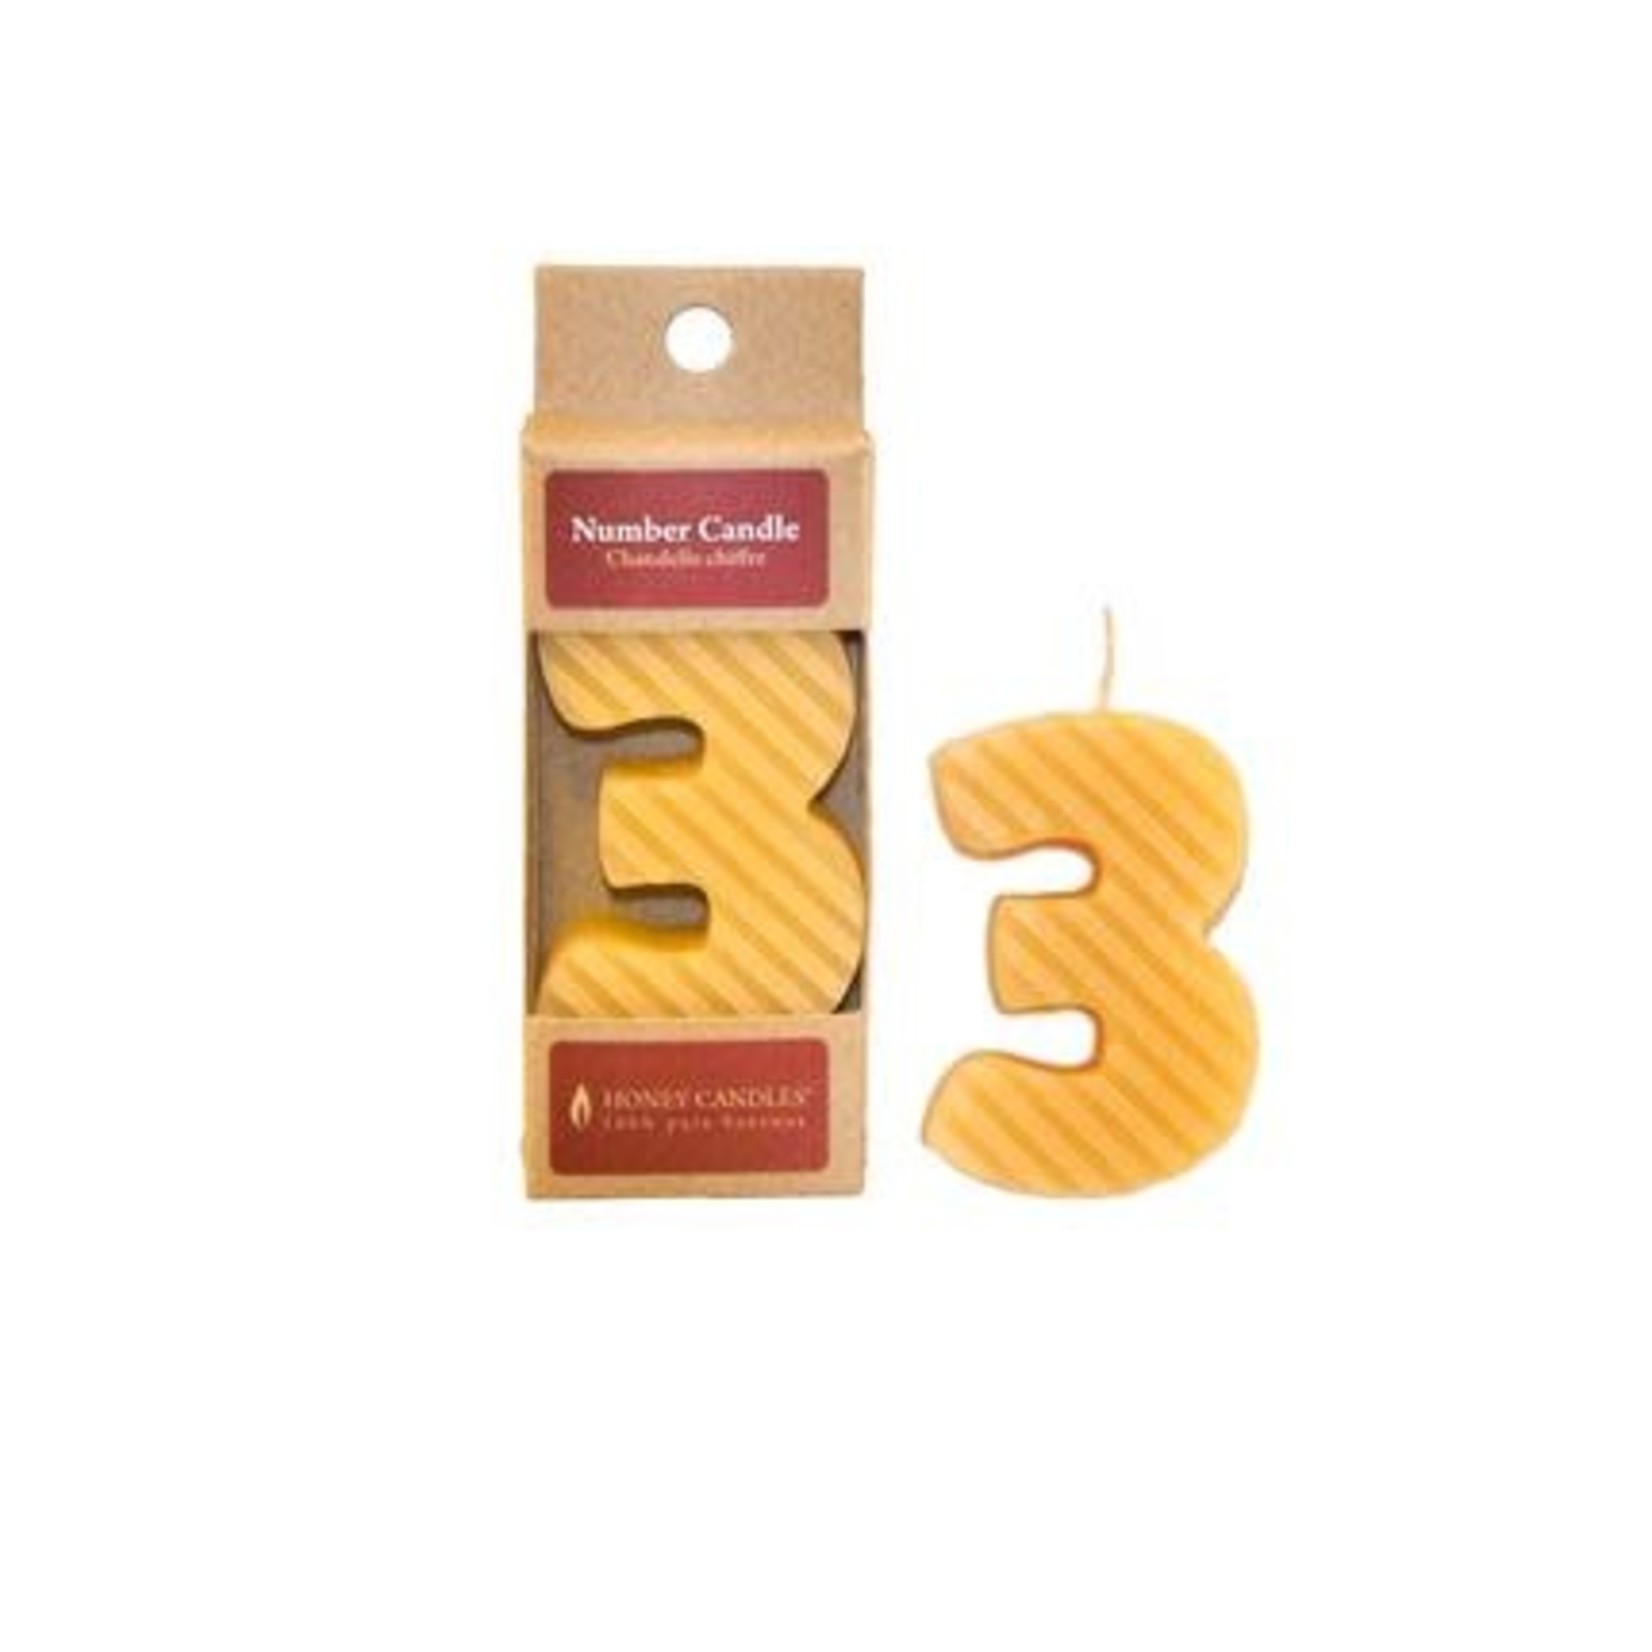 HONEY CANDLES NUMBER 3 BEESWAX CANDLE